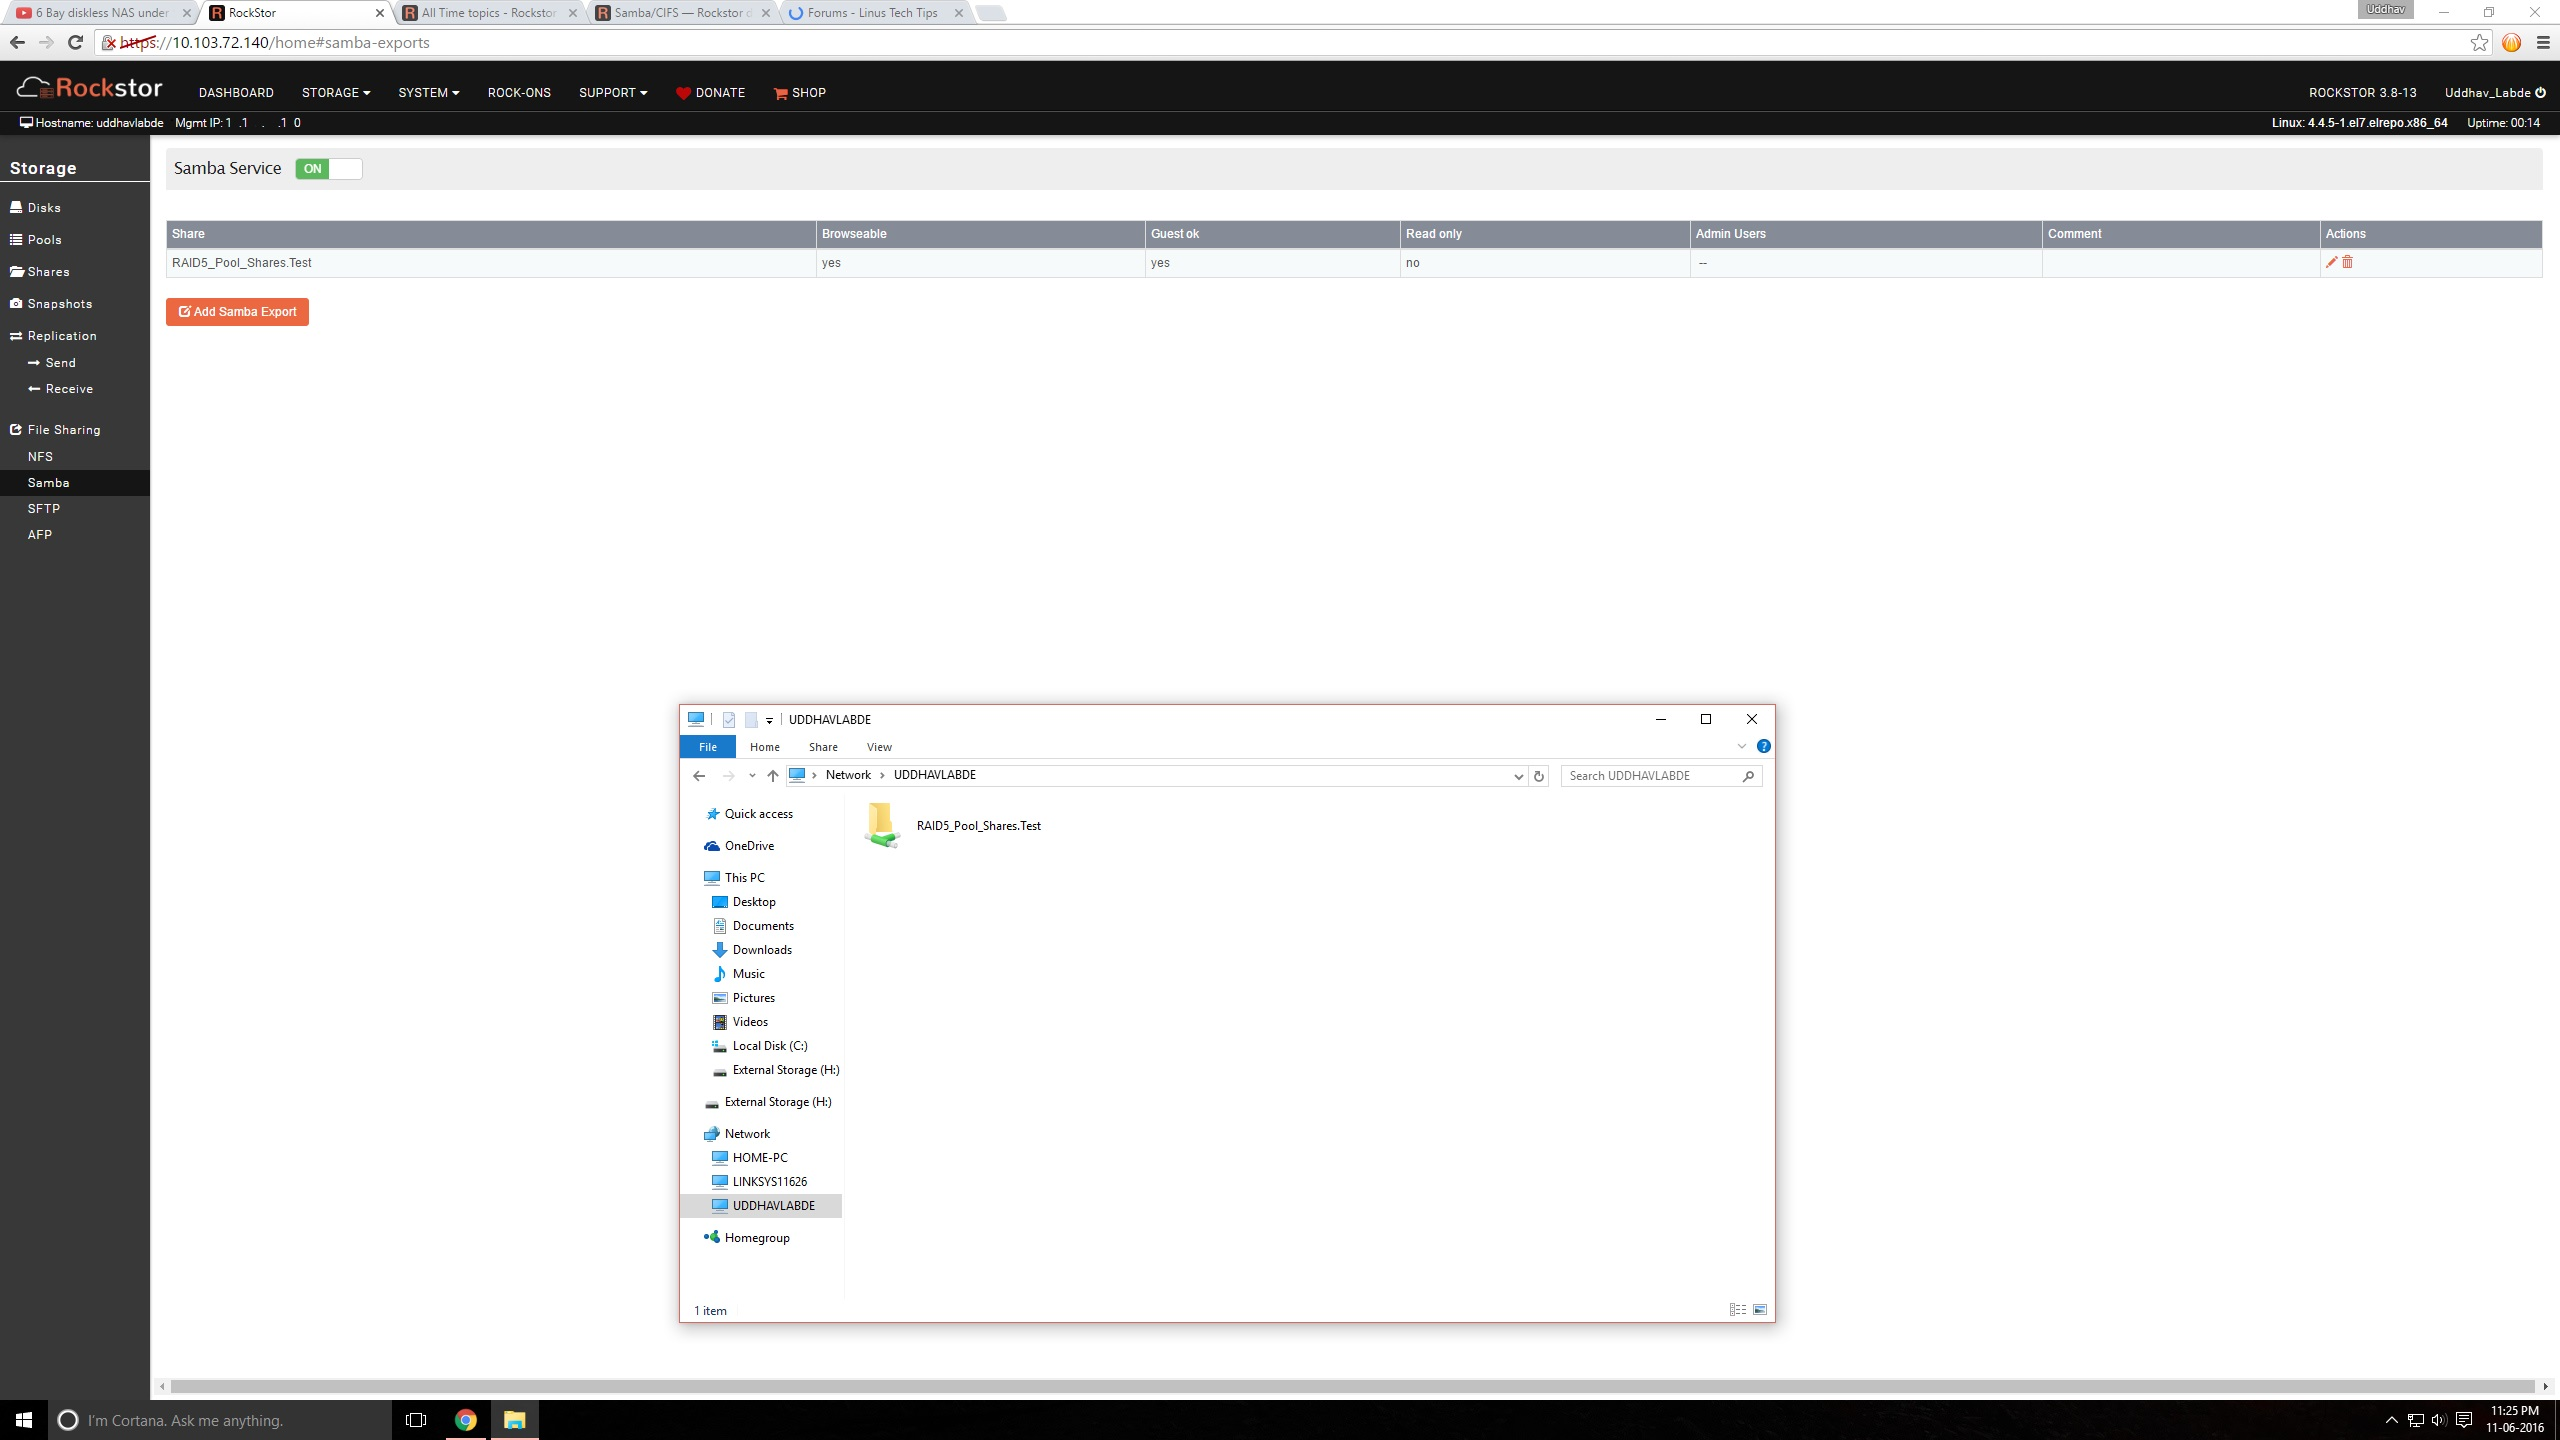 Windows cannot access share - Servers and NAS - Linus Tech Tips